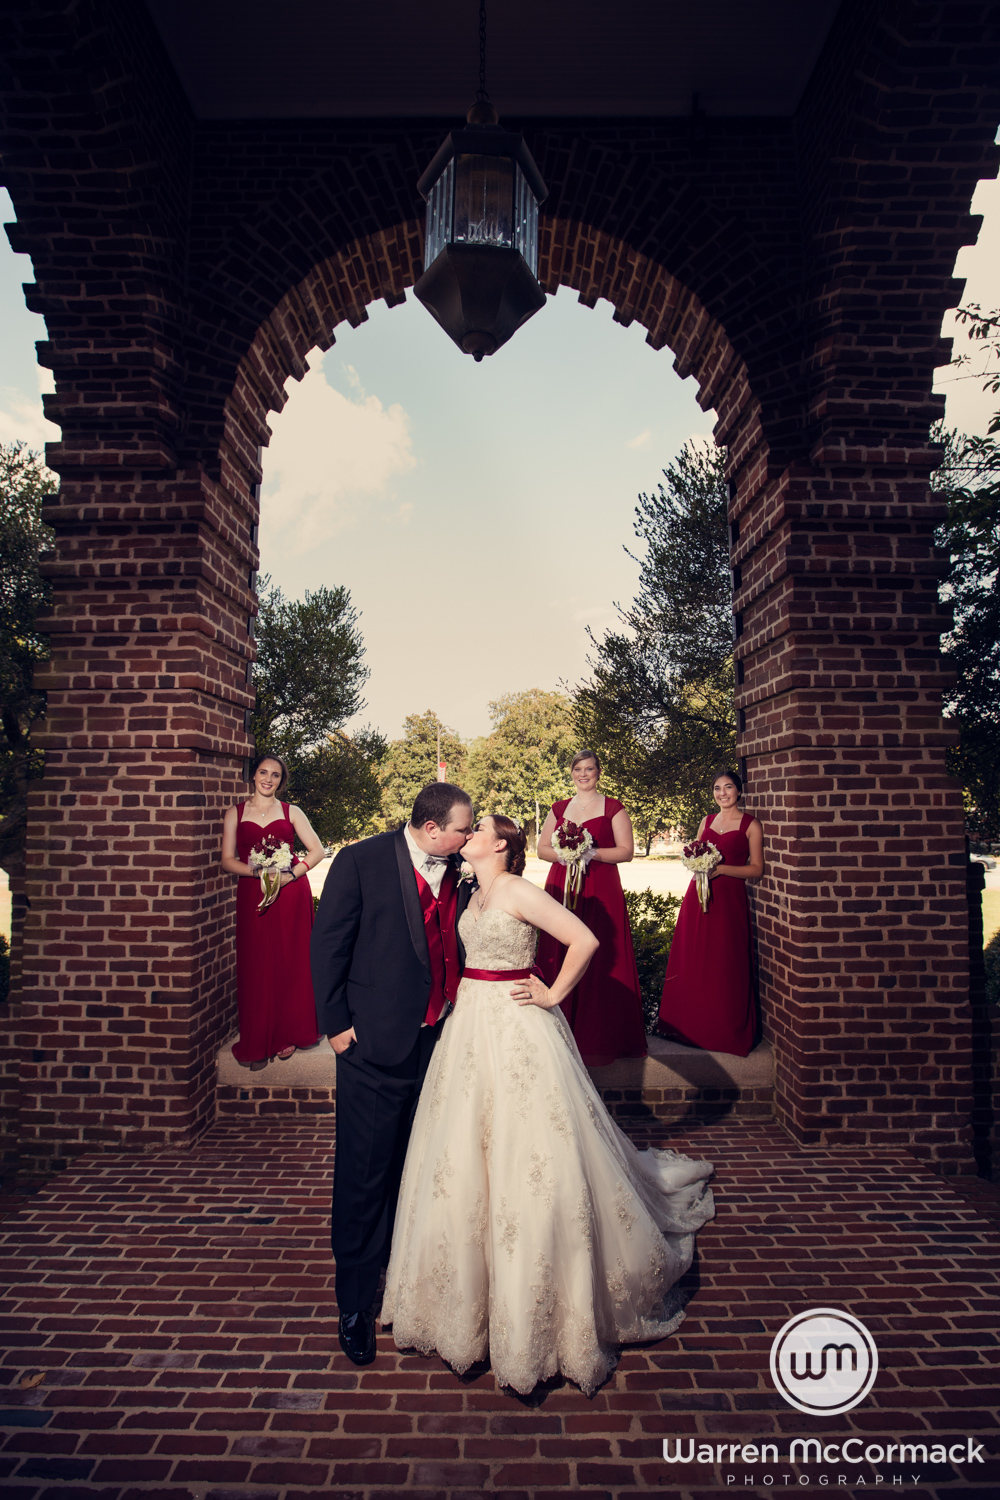 Raleigh North Carolina Wedding Photography - Warren McCormack Photography25.jpg